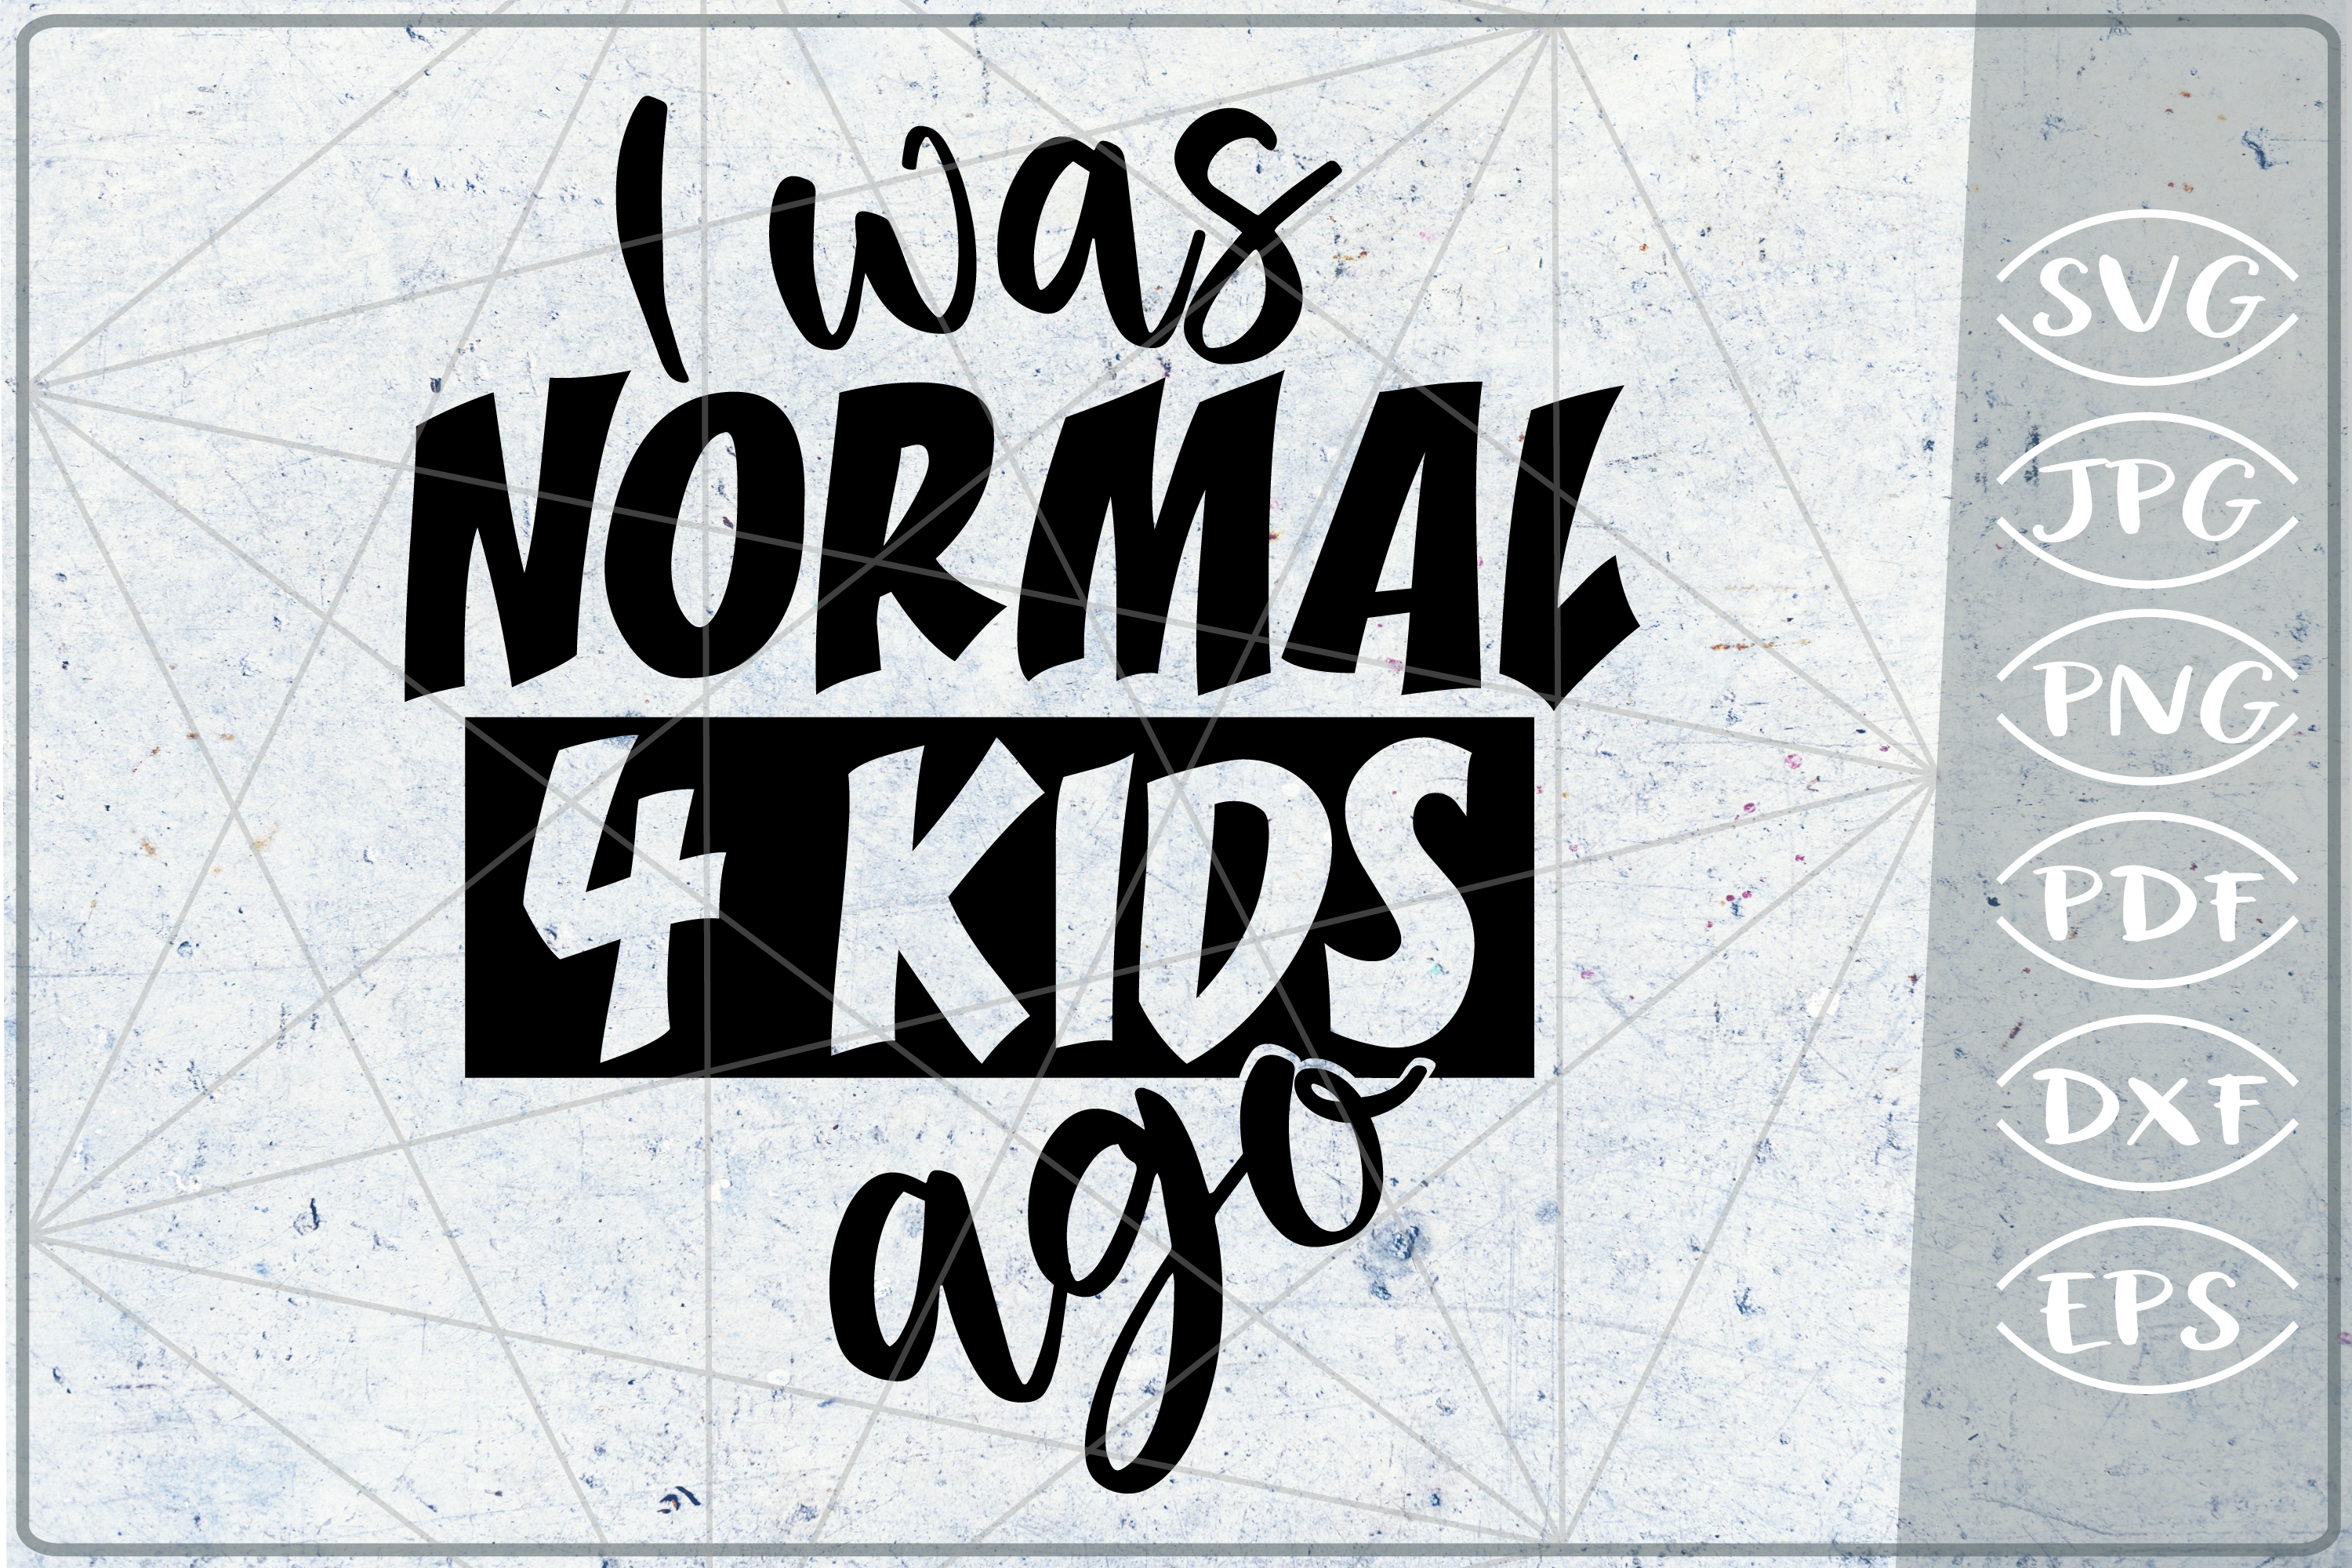 Download Free I Was Normal 4 Kids Ago Svg Cutting File Graphic By Cute Graphic for Cricut Explore, Silhouette and other cutting machines.